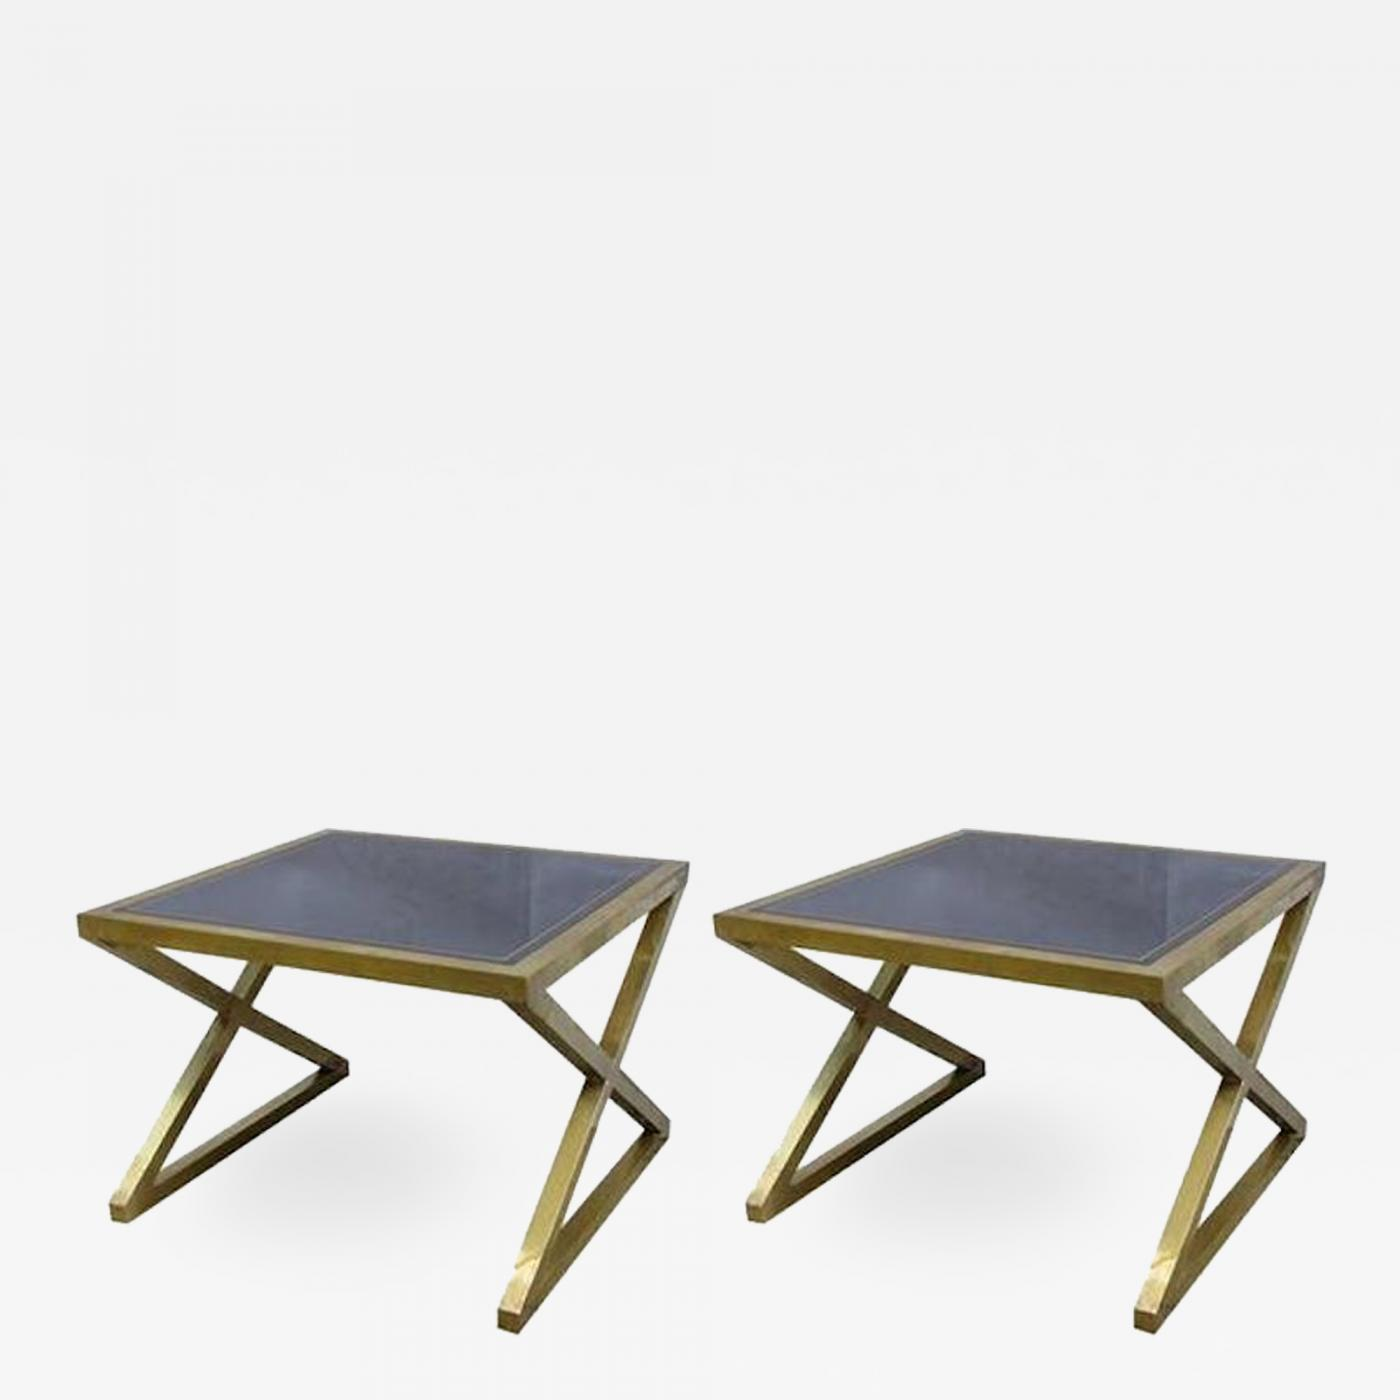 Italian Glass Coffee Table.Italian Pair Of X Frame Handcrafted Brass And Glass Coffee Side Tables